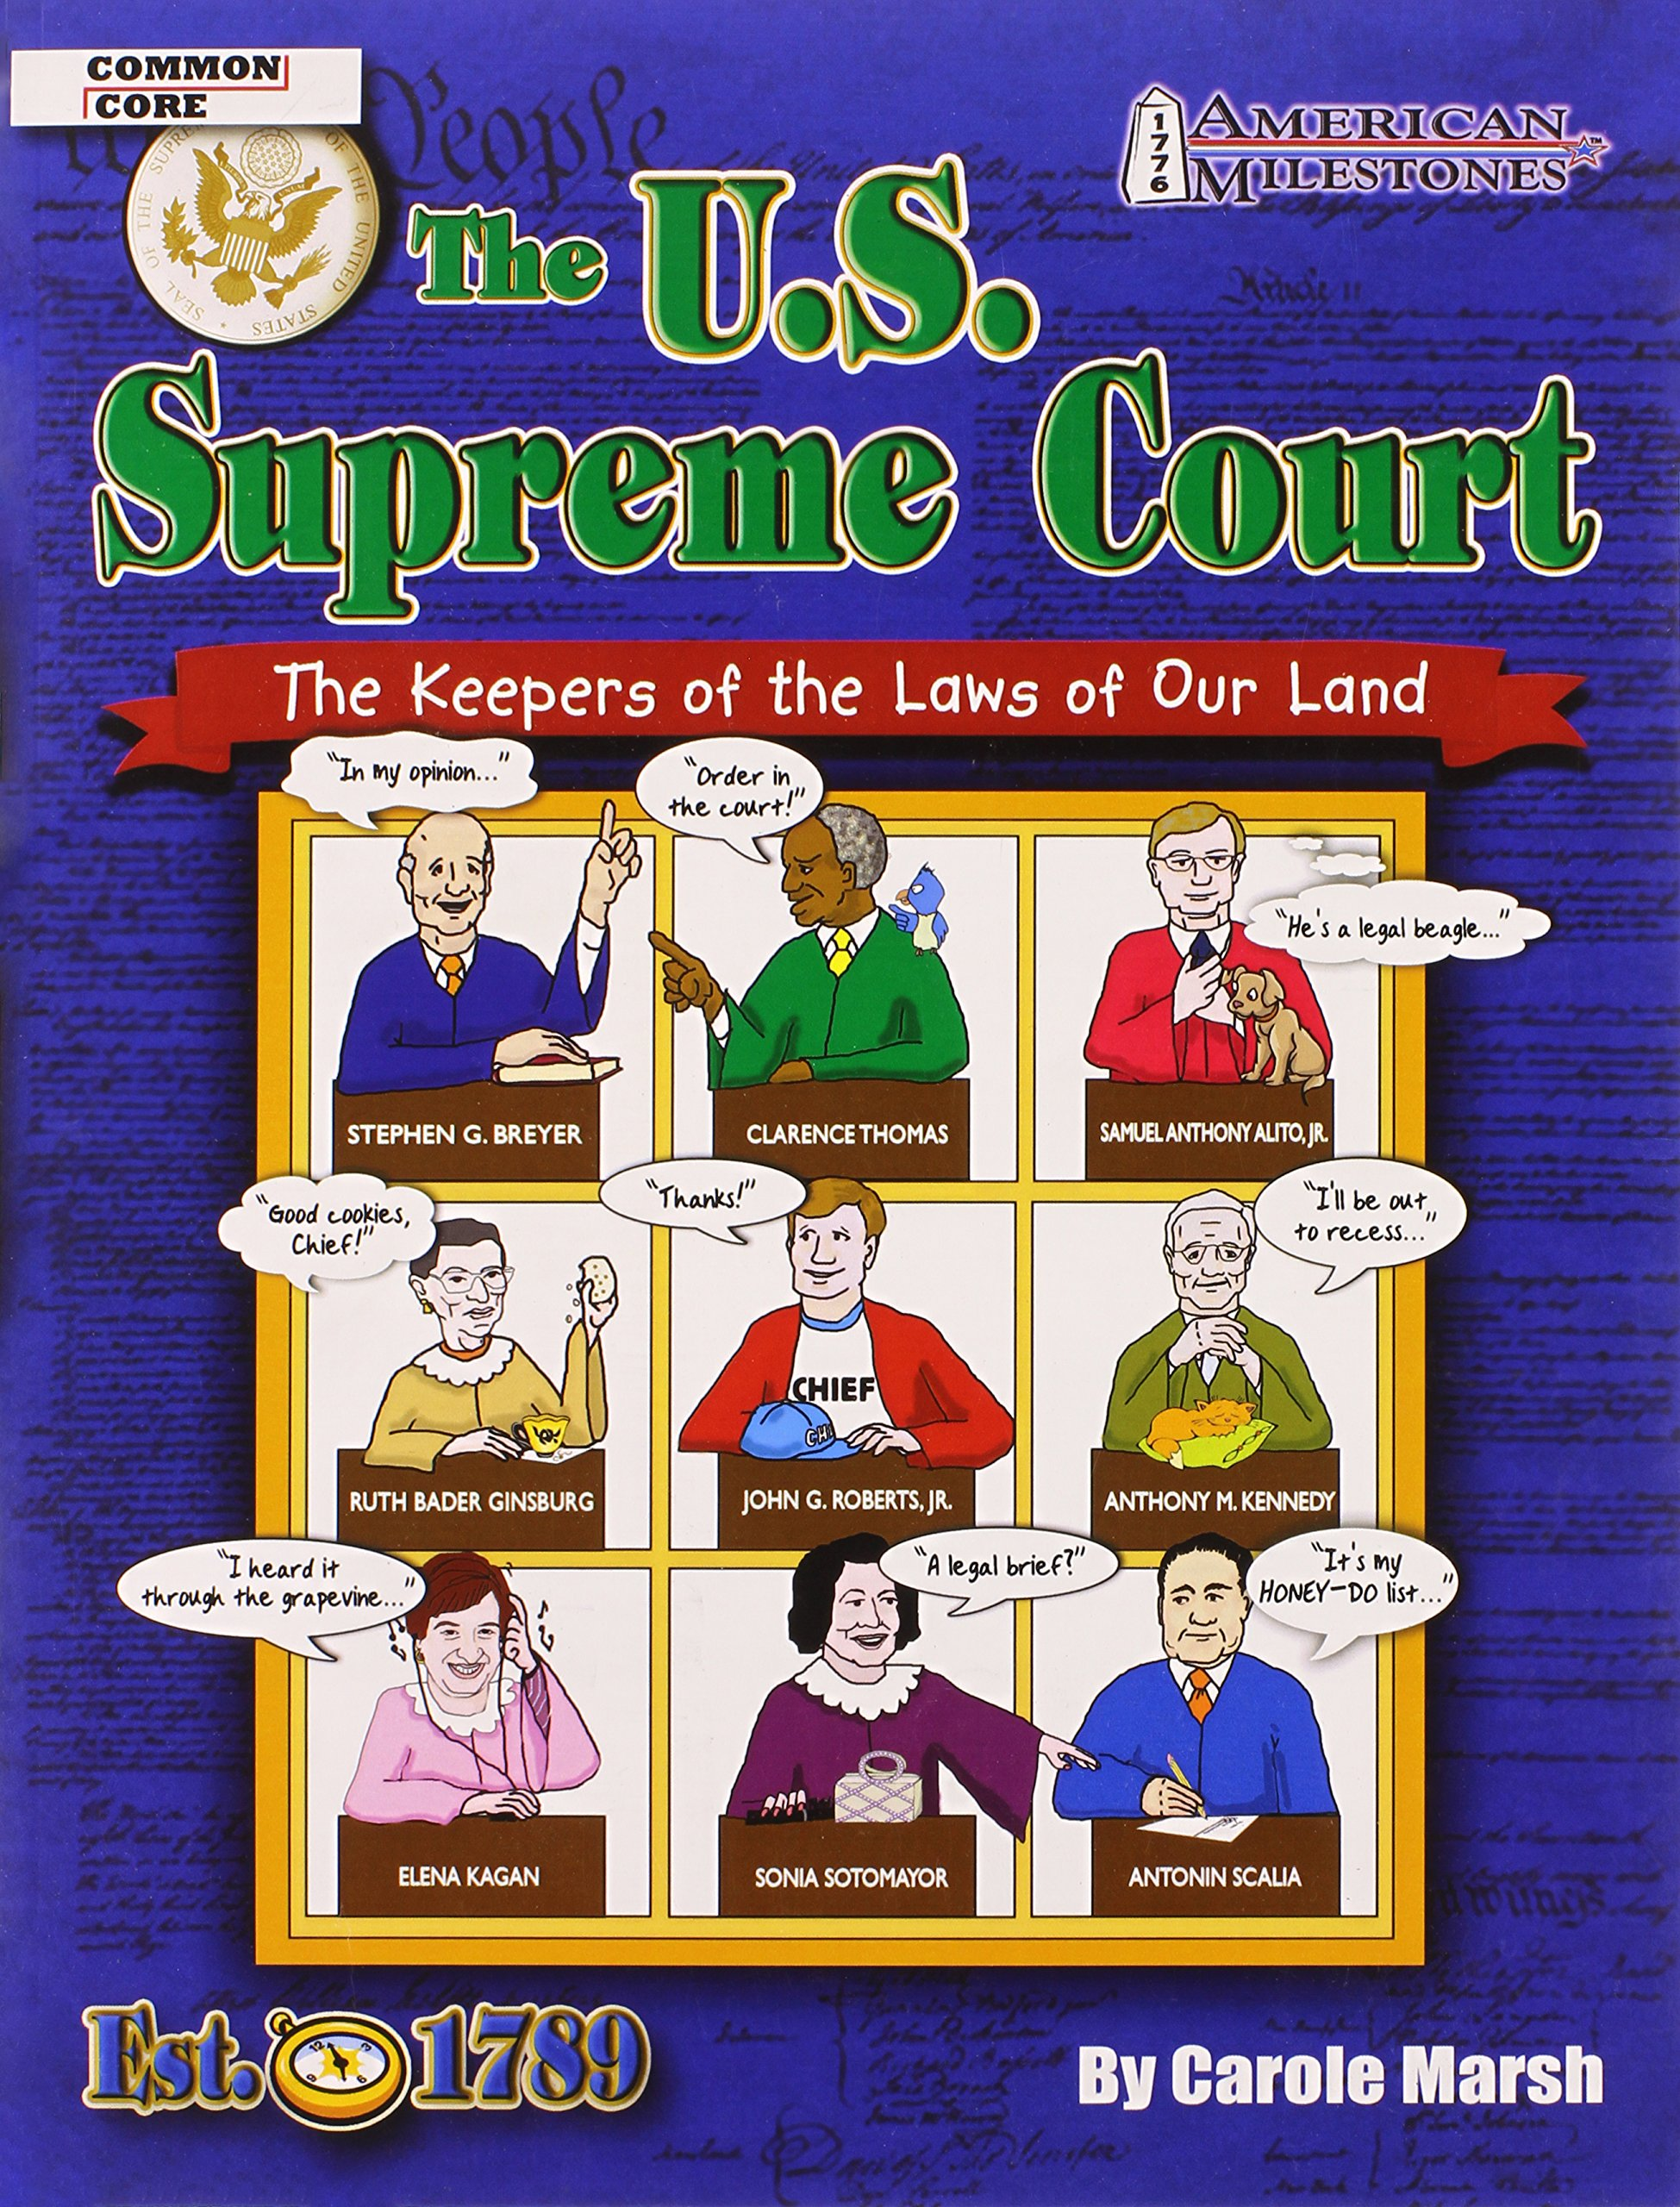 The U.S. Supreme Court:  The Keepers of the Laws of Our Land (American Milestones) PDF